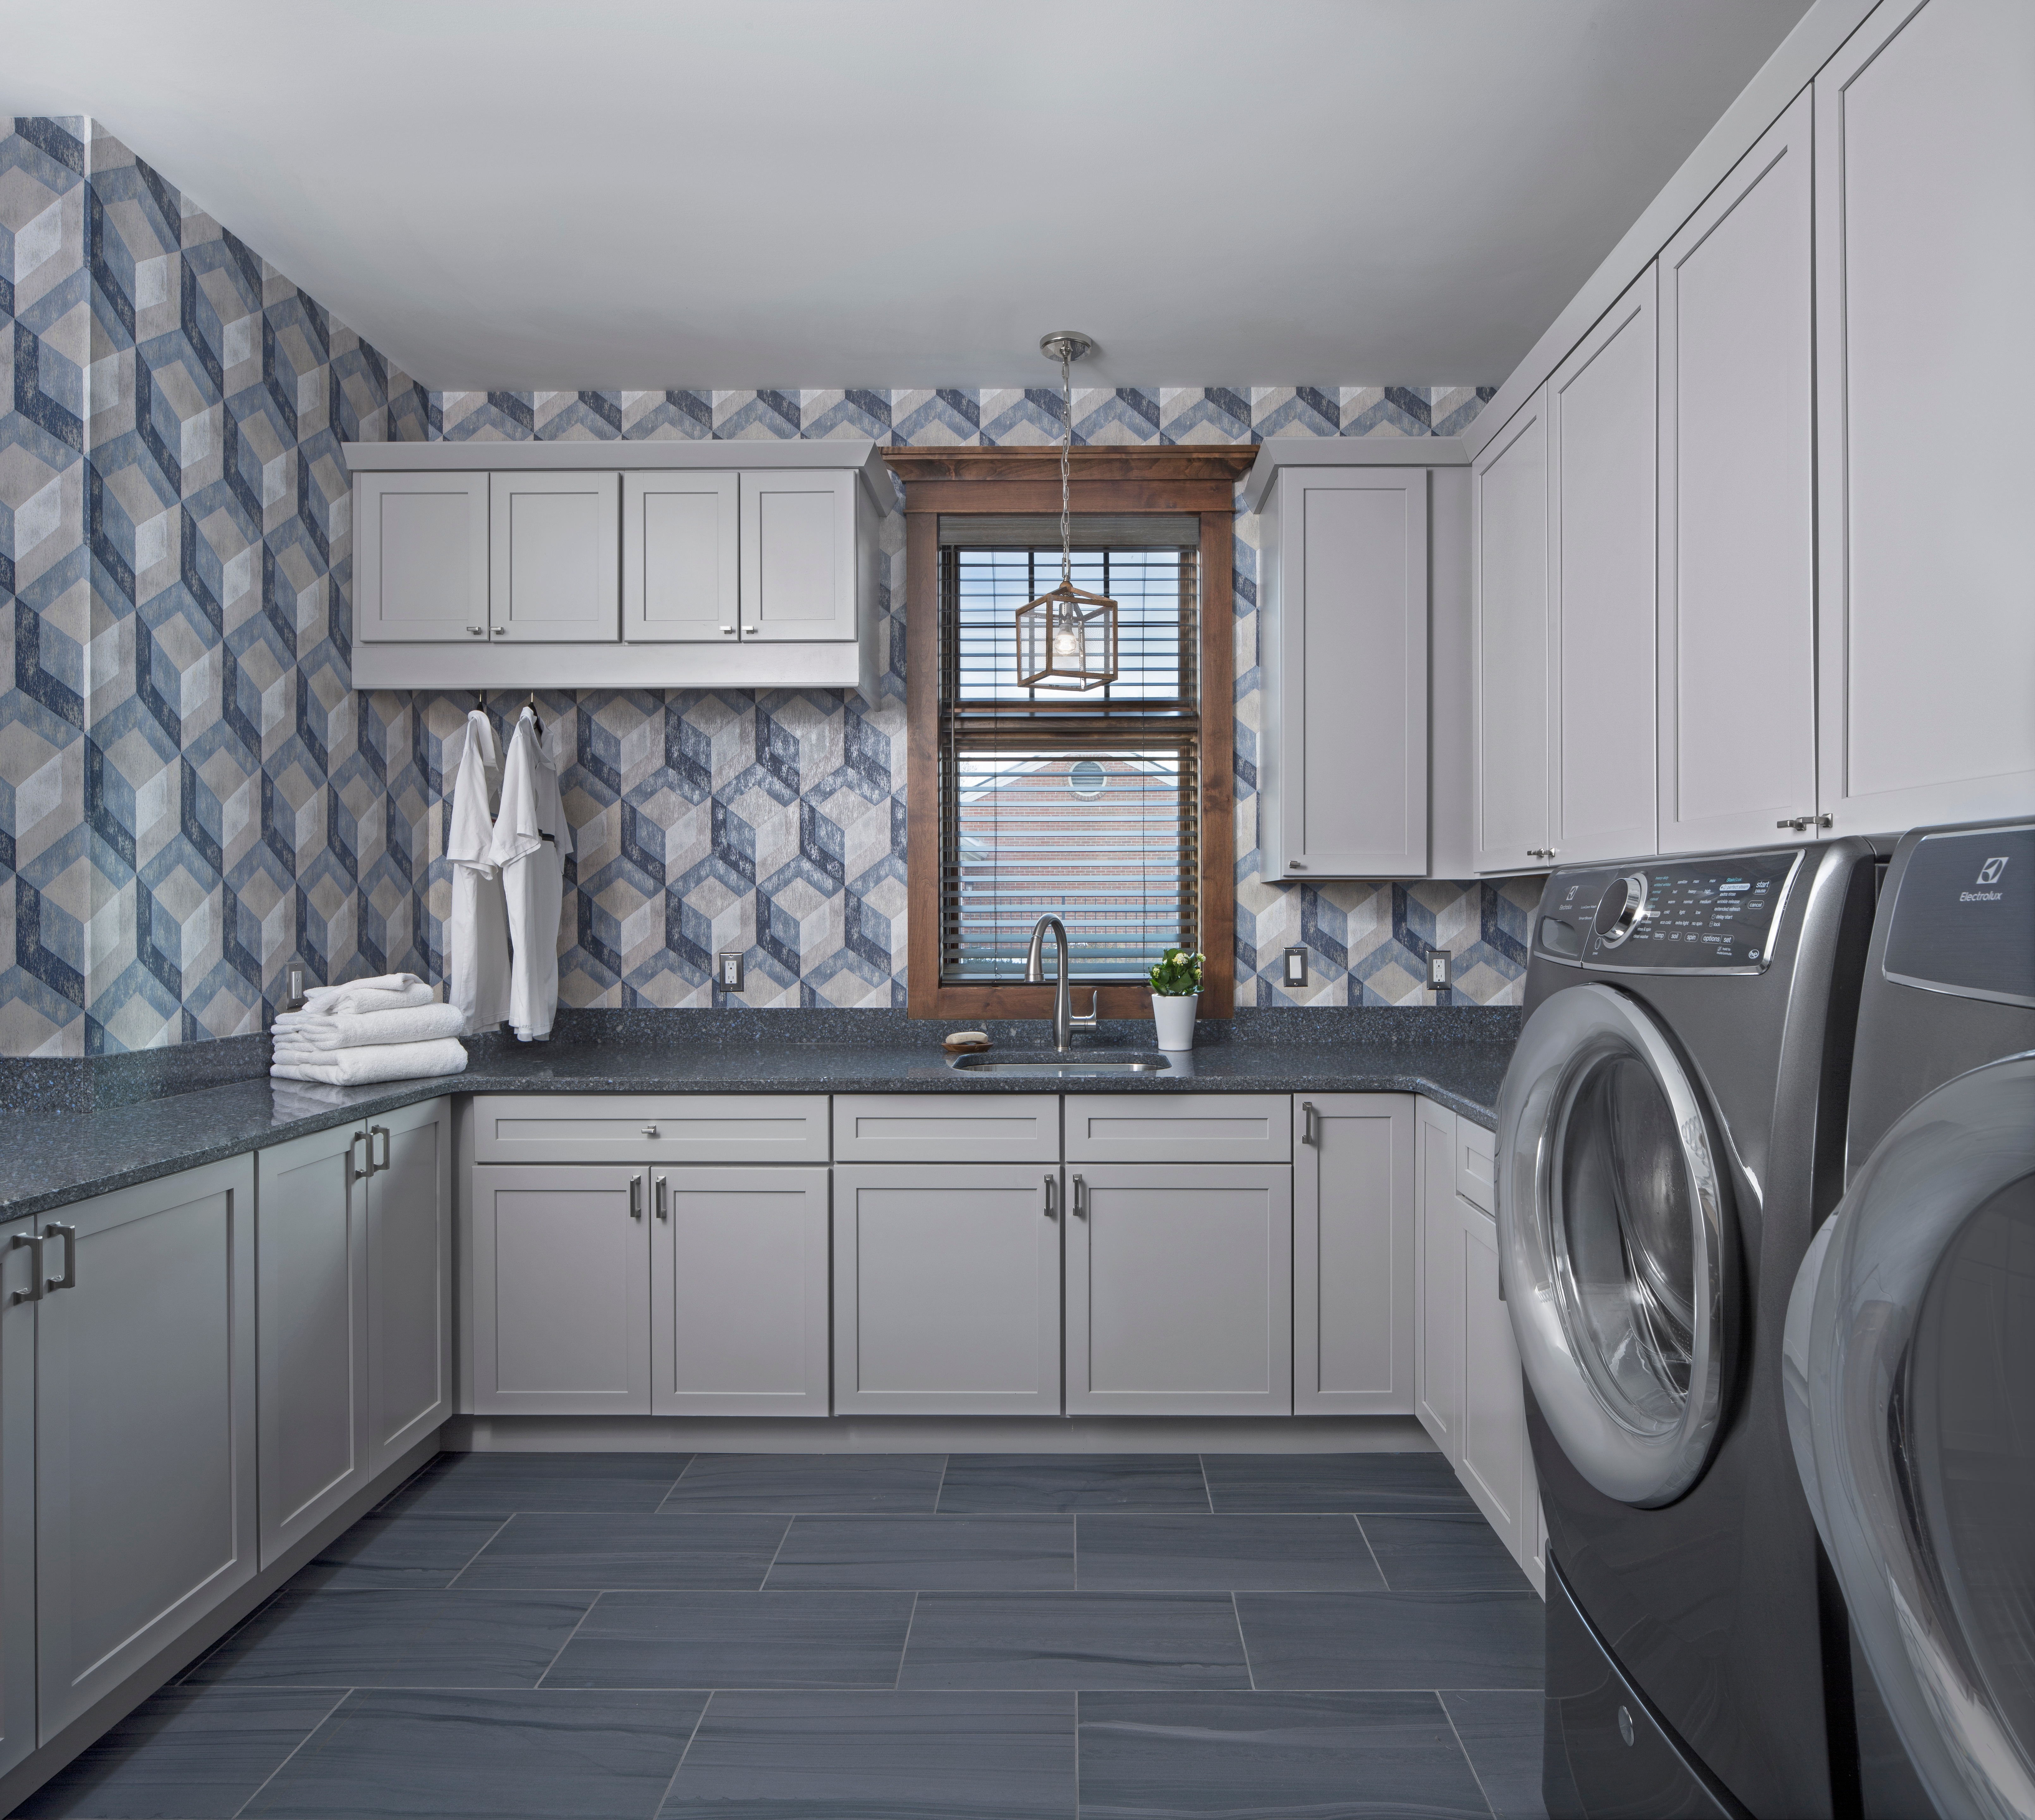 KSI_Transitional_Laundry Room-gray cabinets